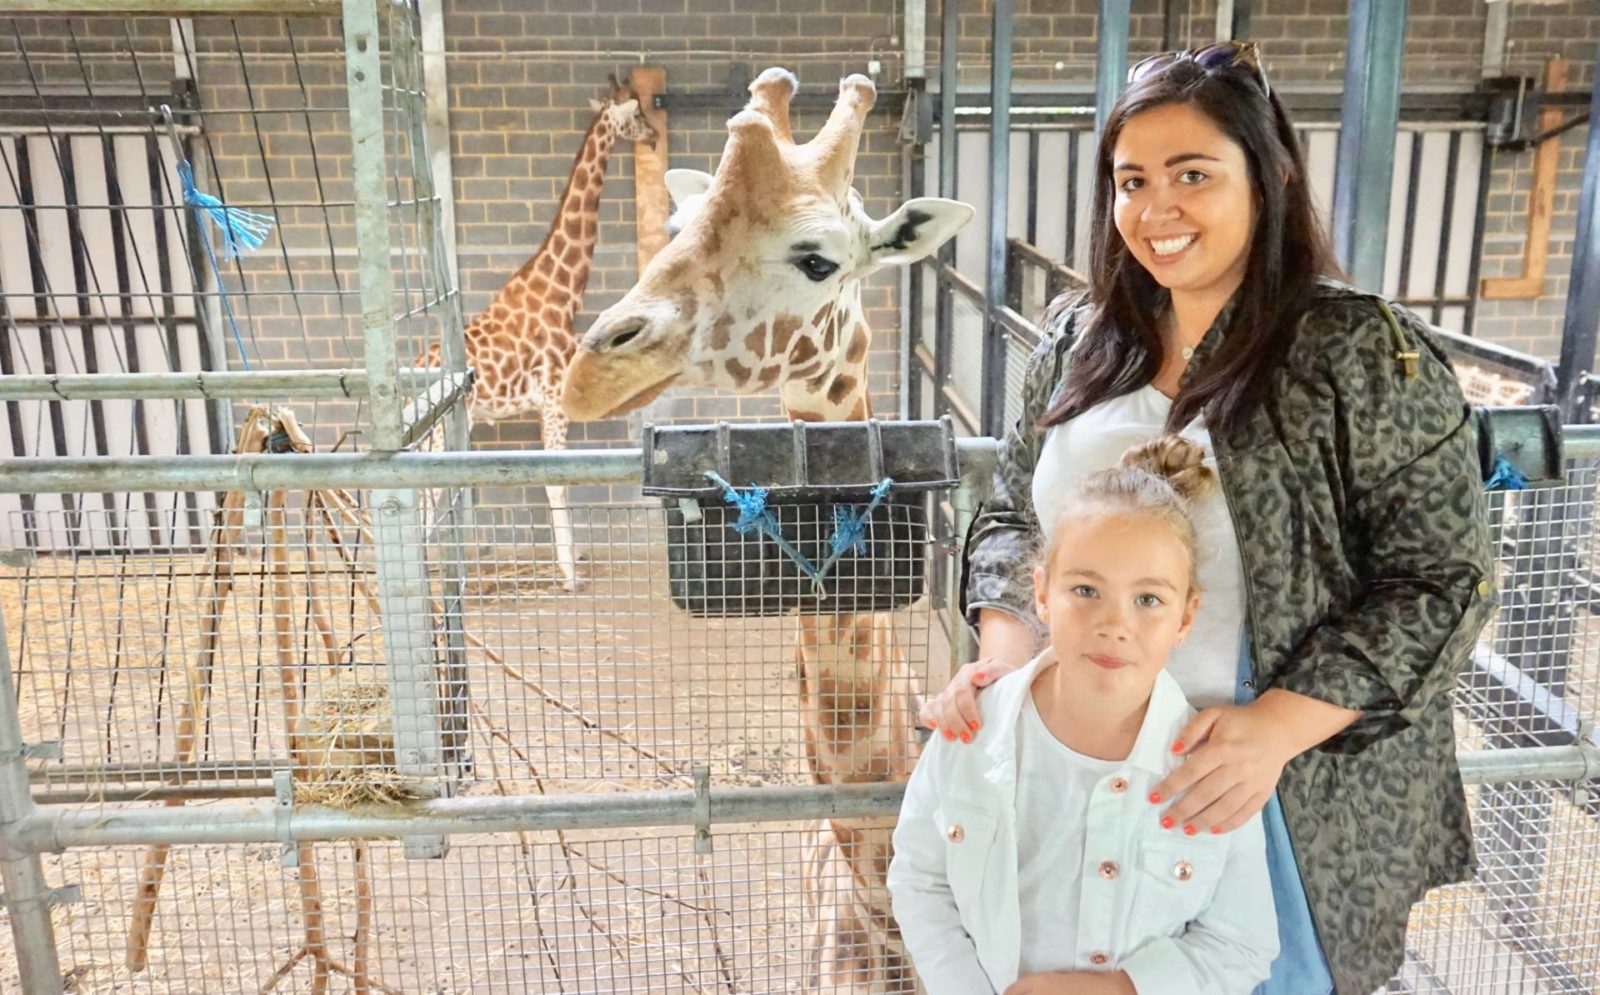 Giraffe-Feeding-Experience-at-Chessington